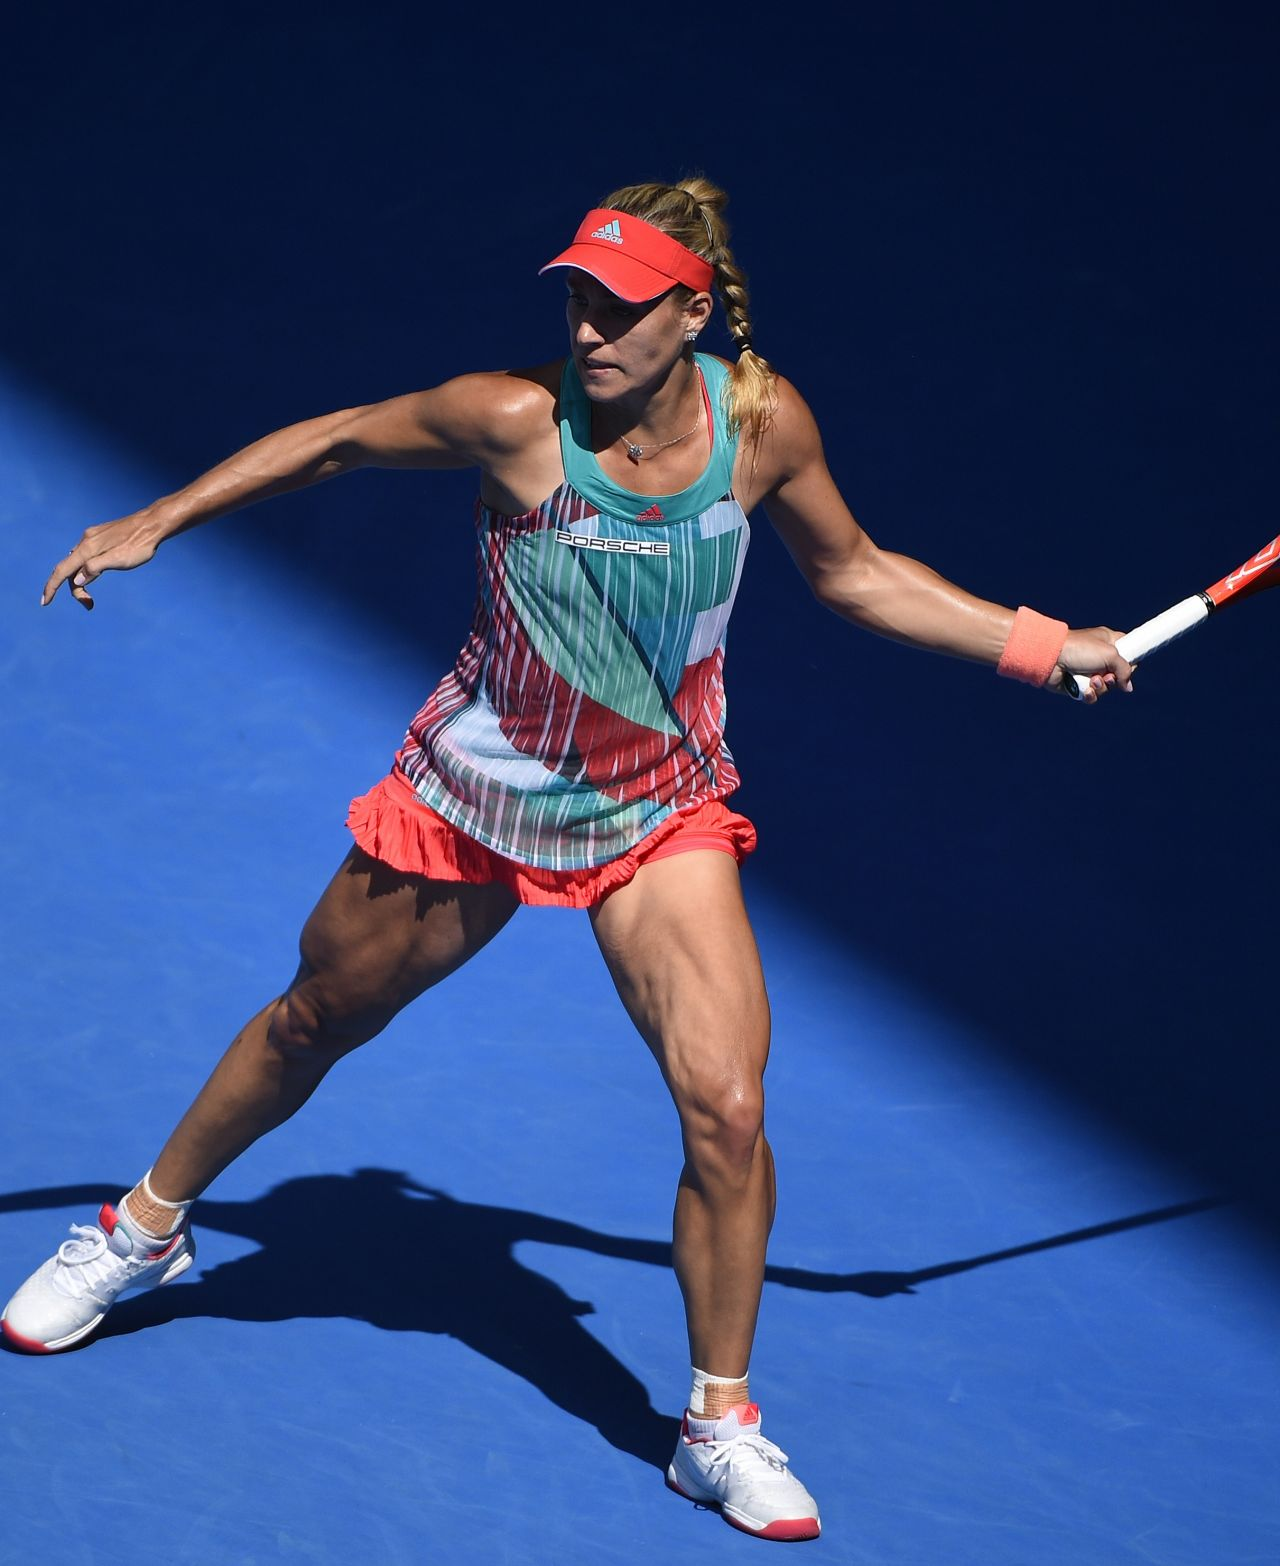 angelique-kerber-2016-australian-open-in-melbourne-semifinals-1